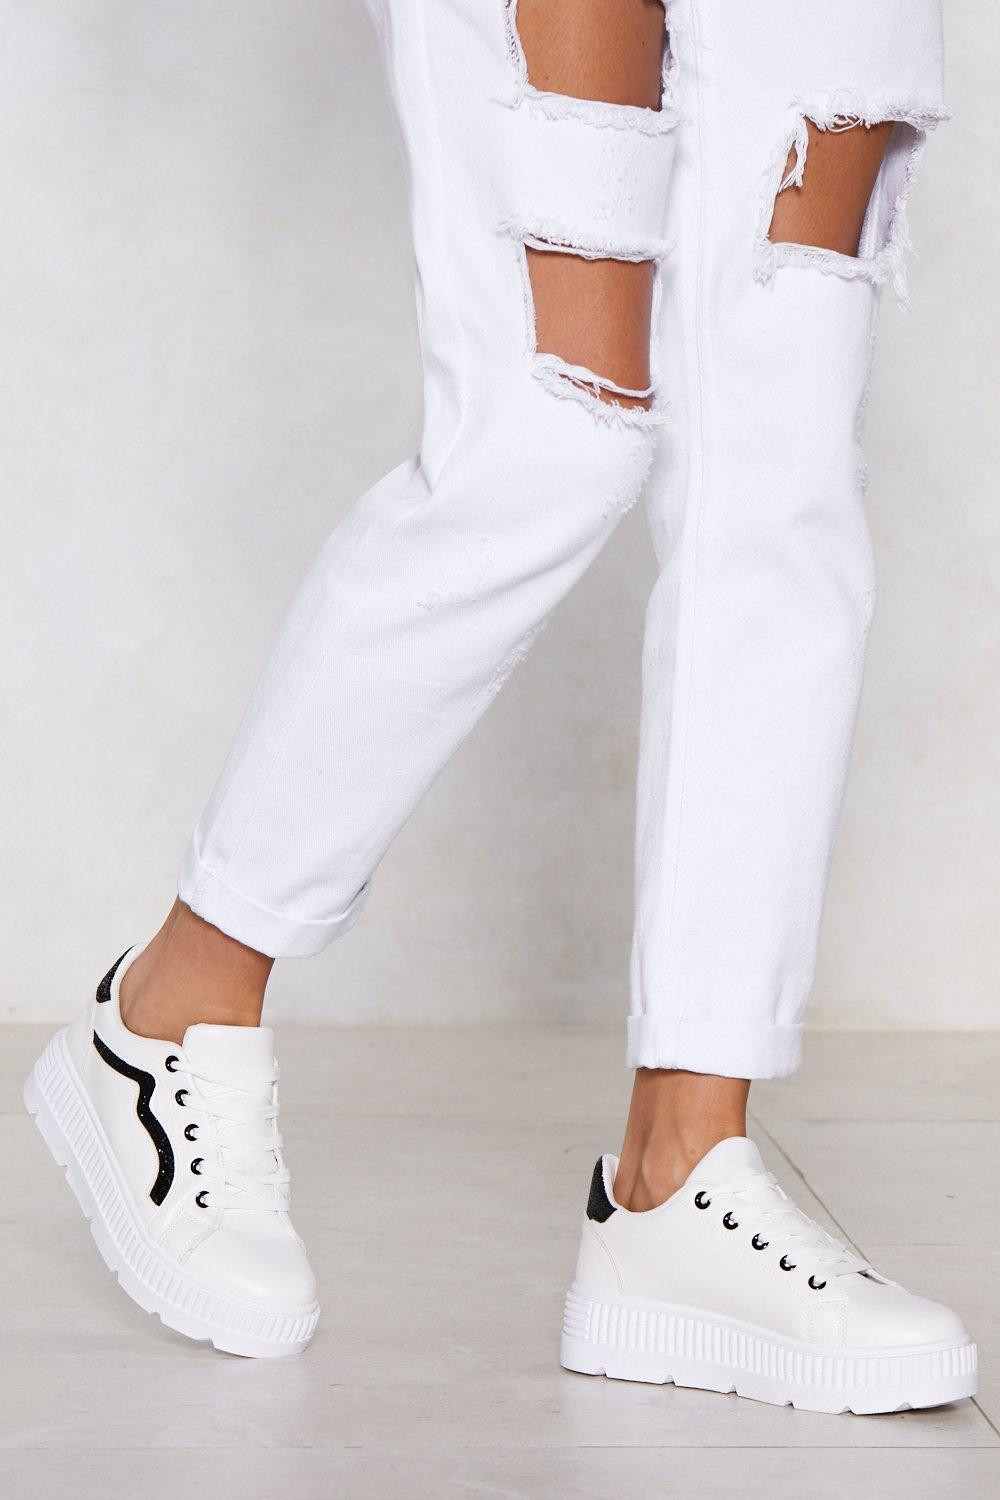 2d70d9bbb My Heart and Sole Platform Sneakers | Shop Clothes at Nasty Gal!